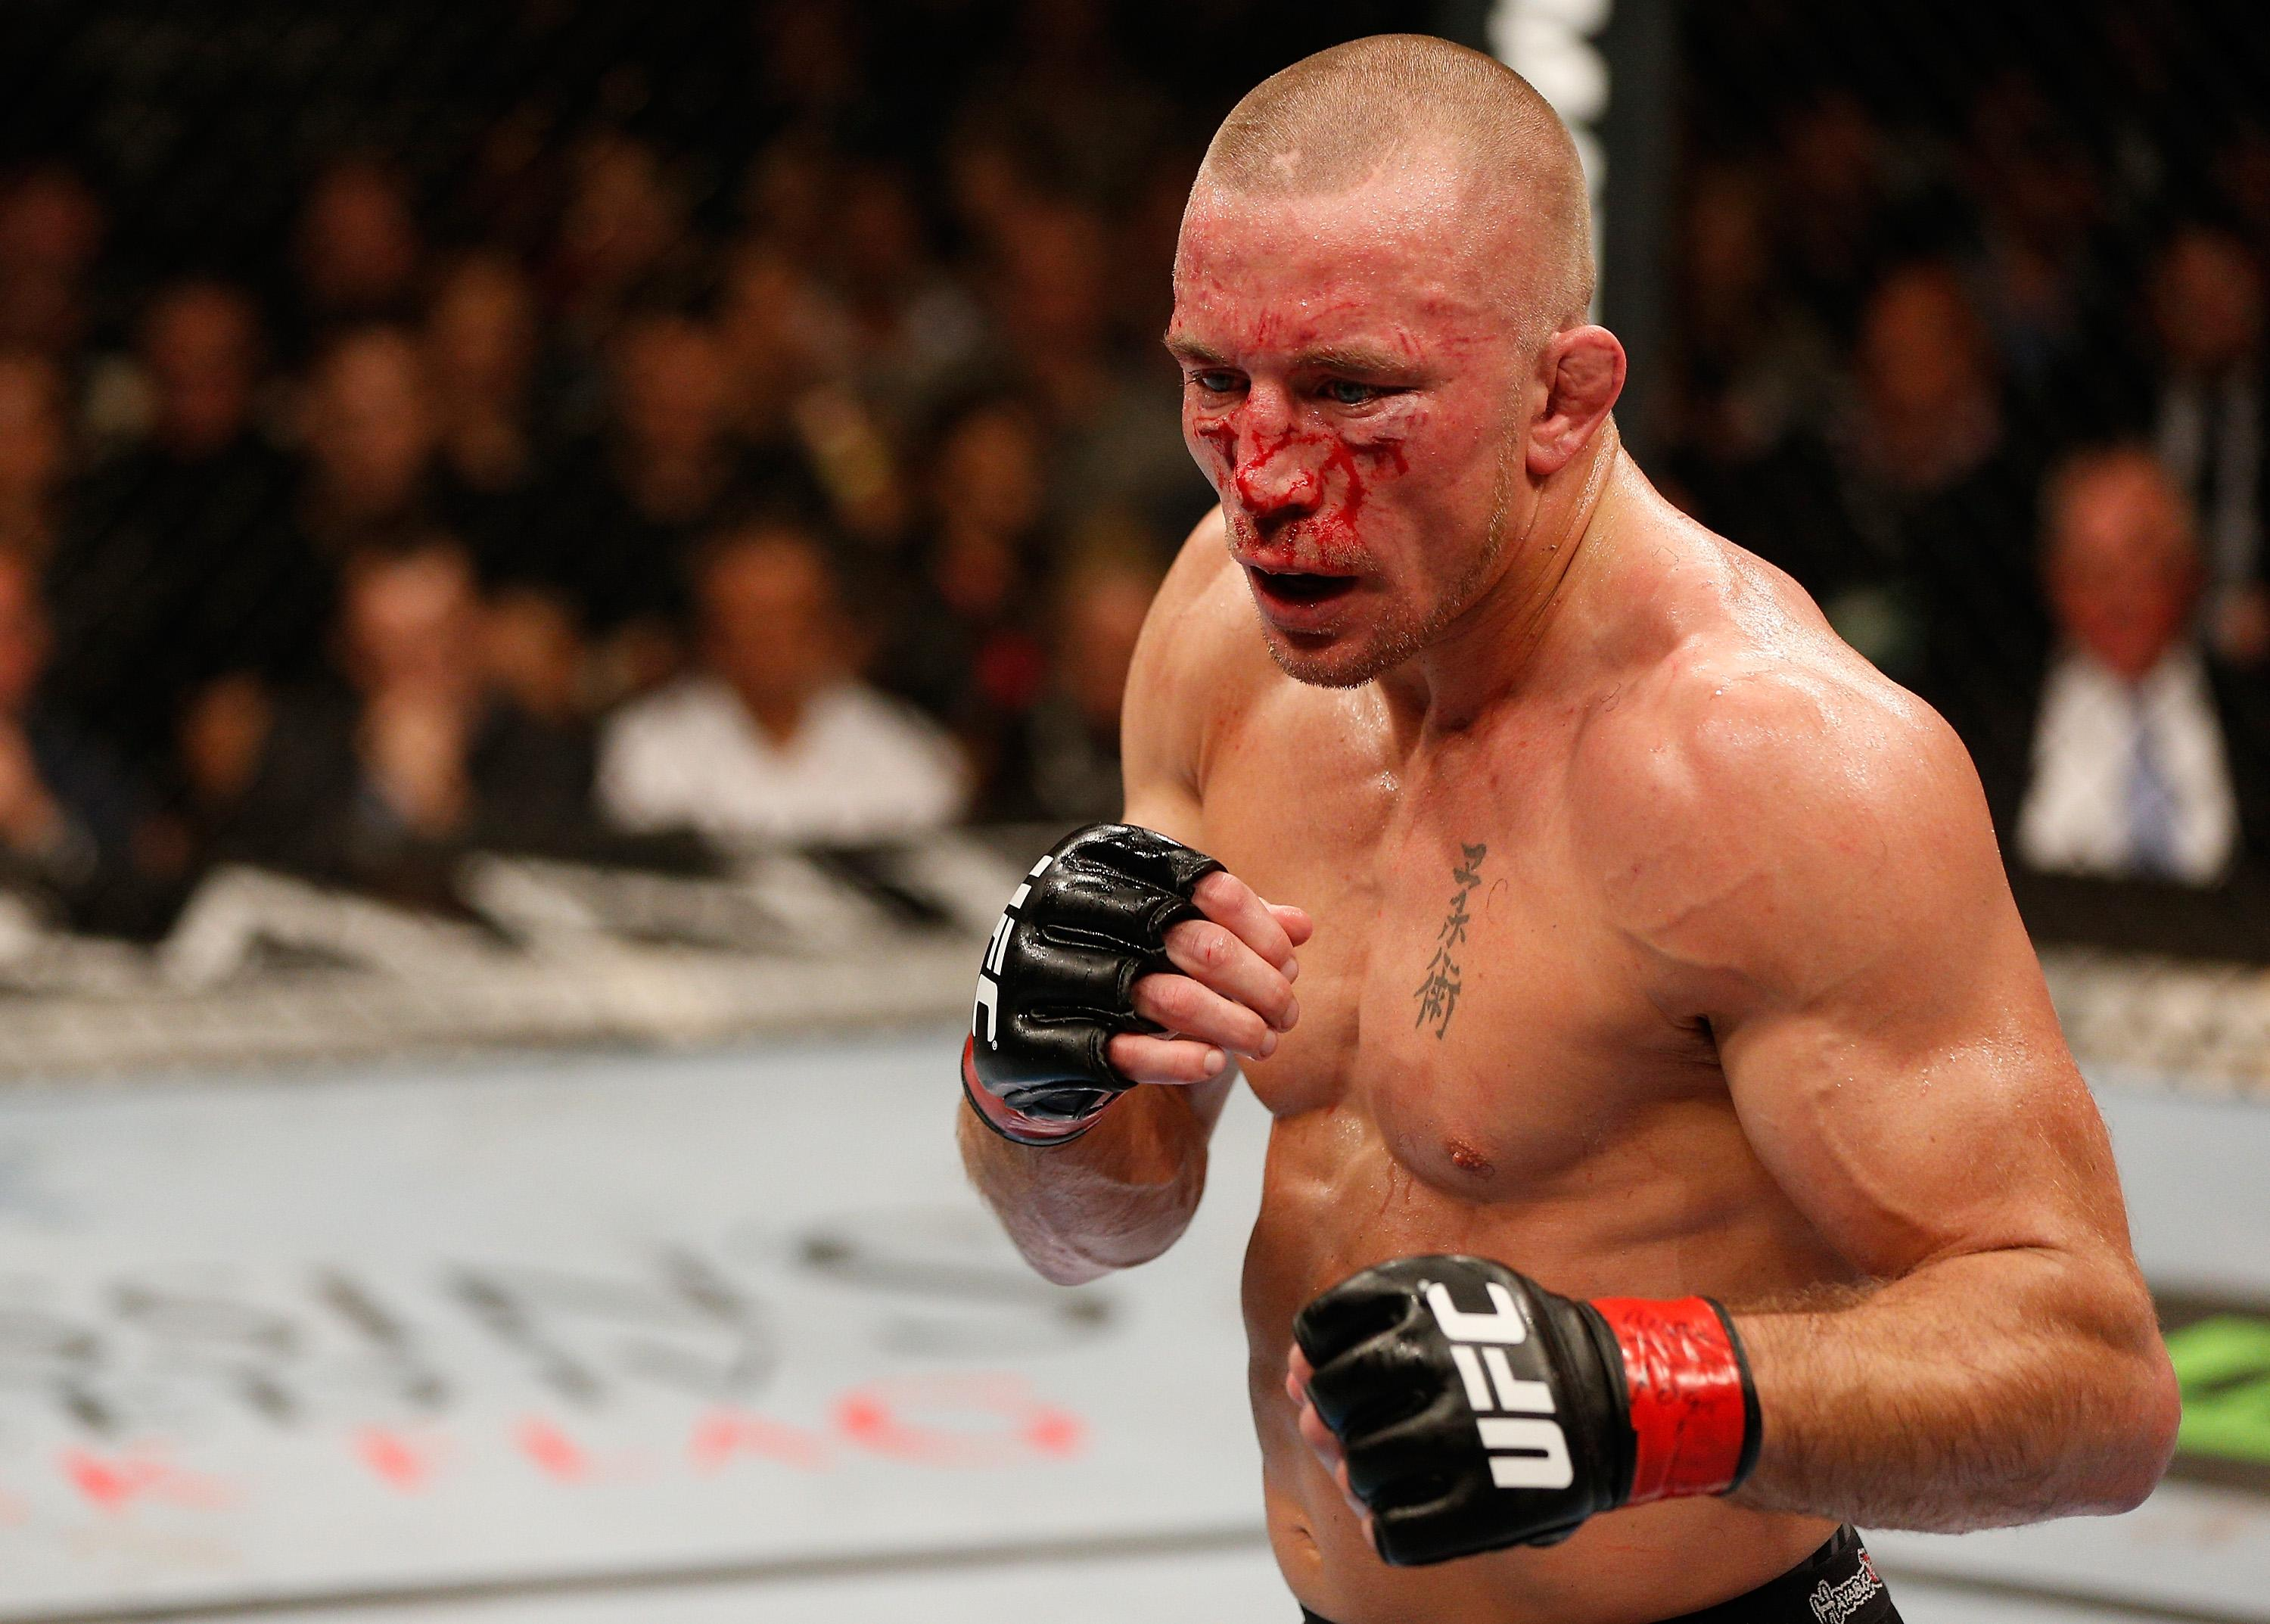 St Pierre is a former UFC welterweight and middleweight champion and considered one of MMA's all time greats